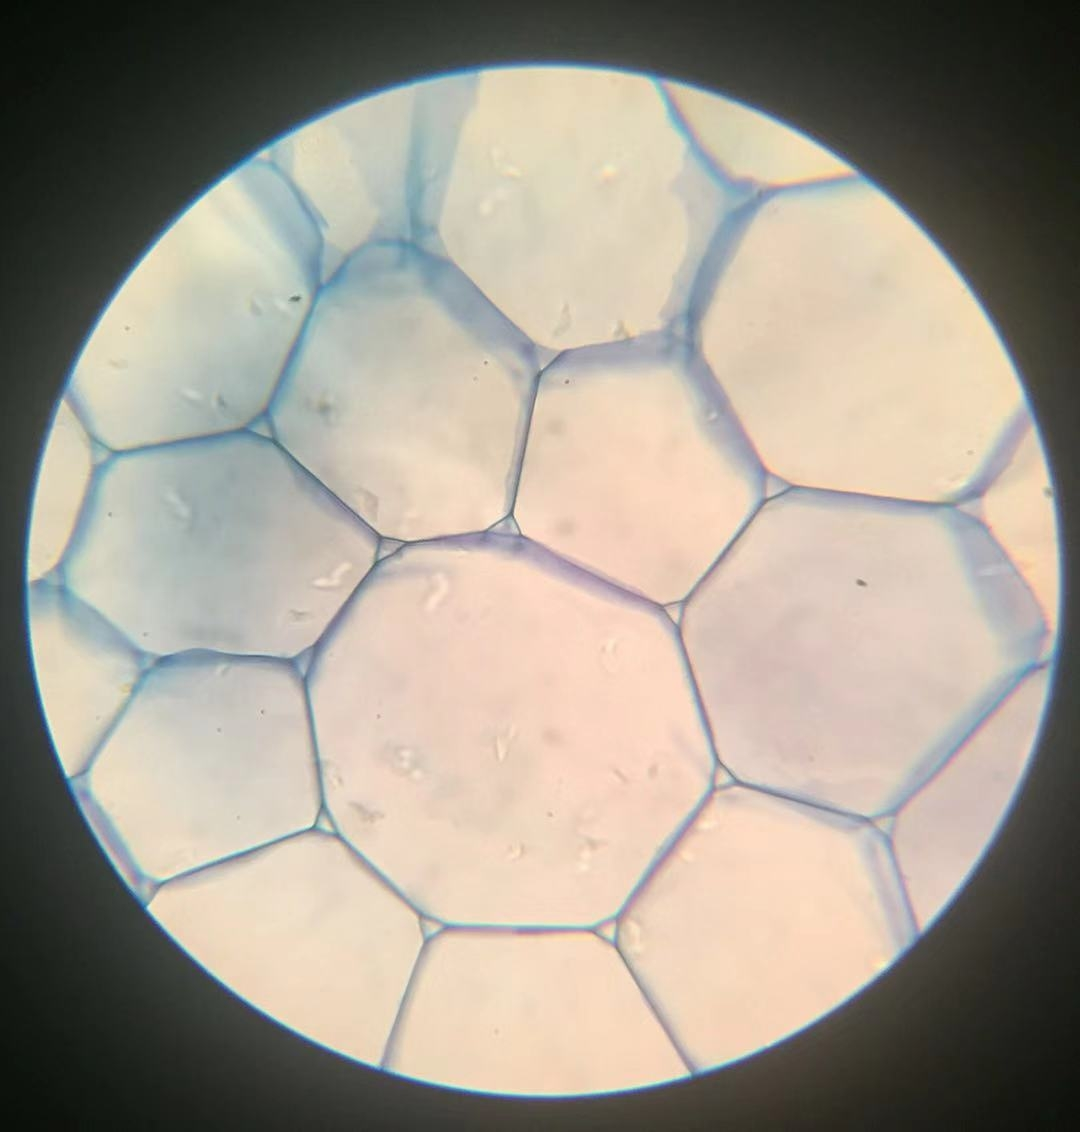 Parenchyma- 400x magnification